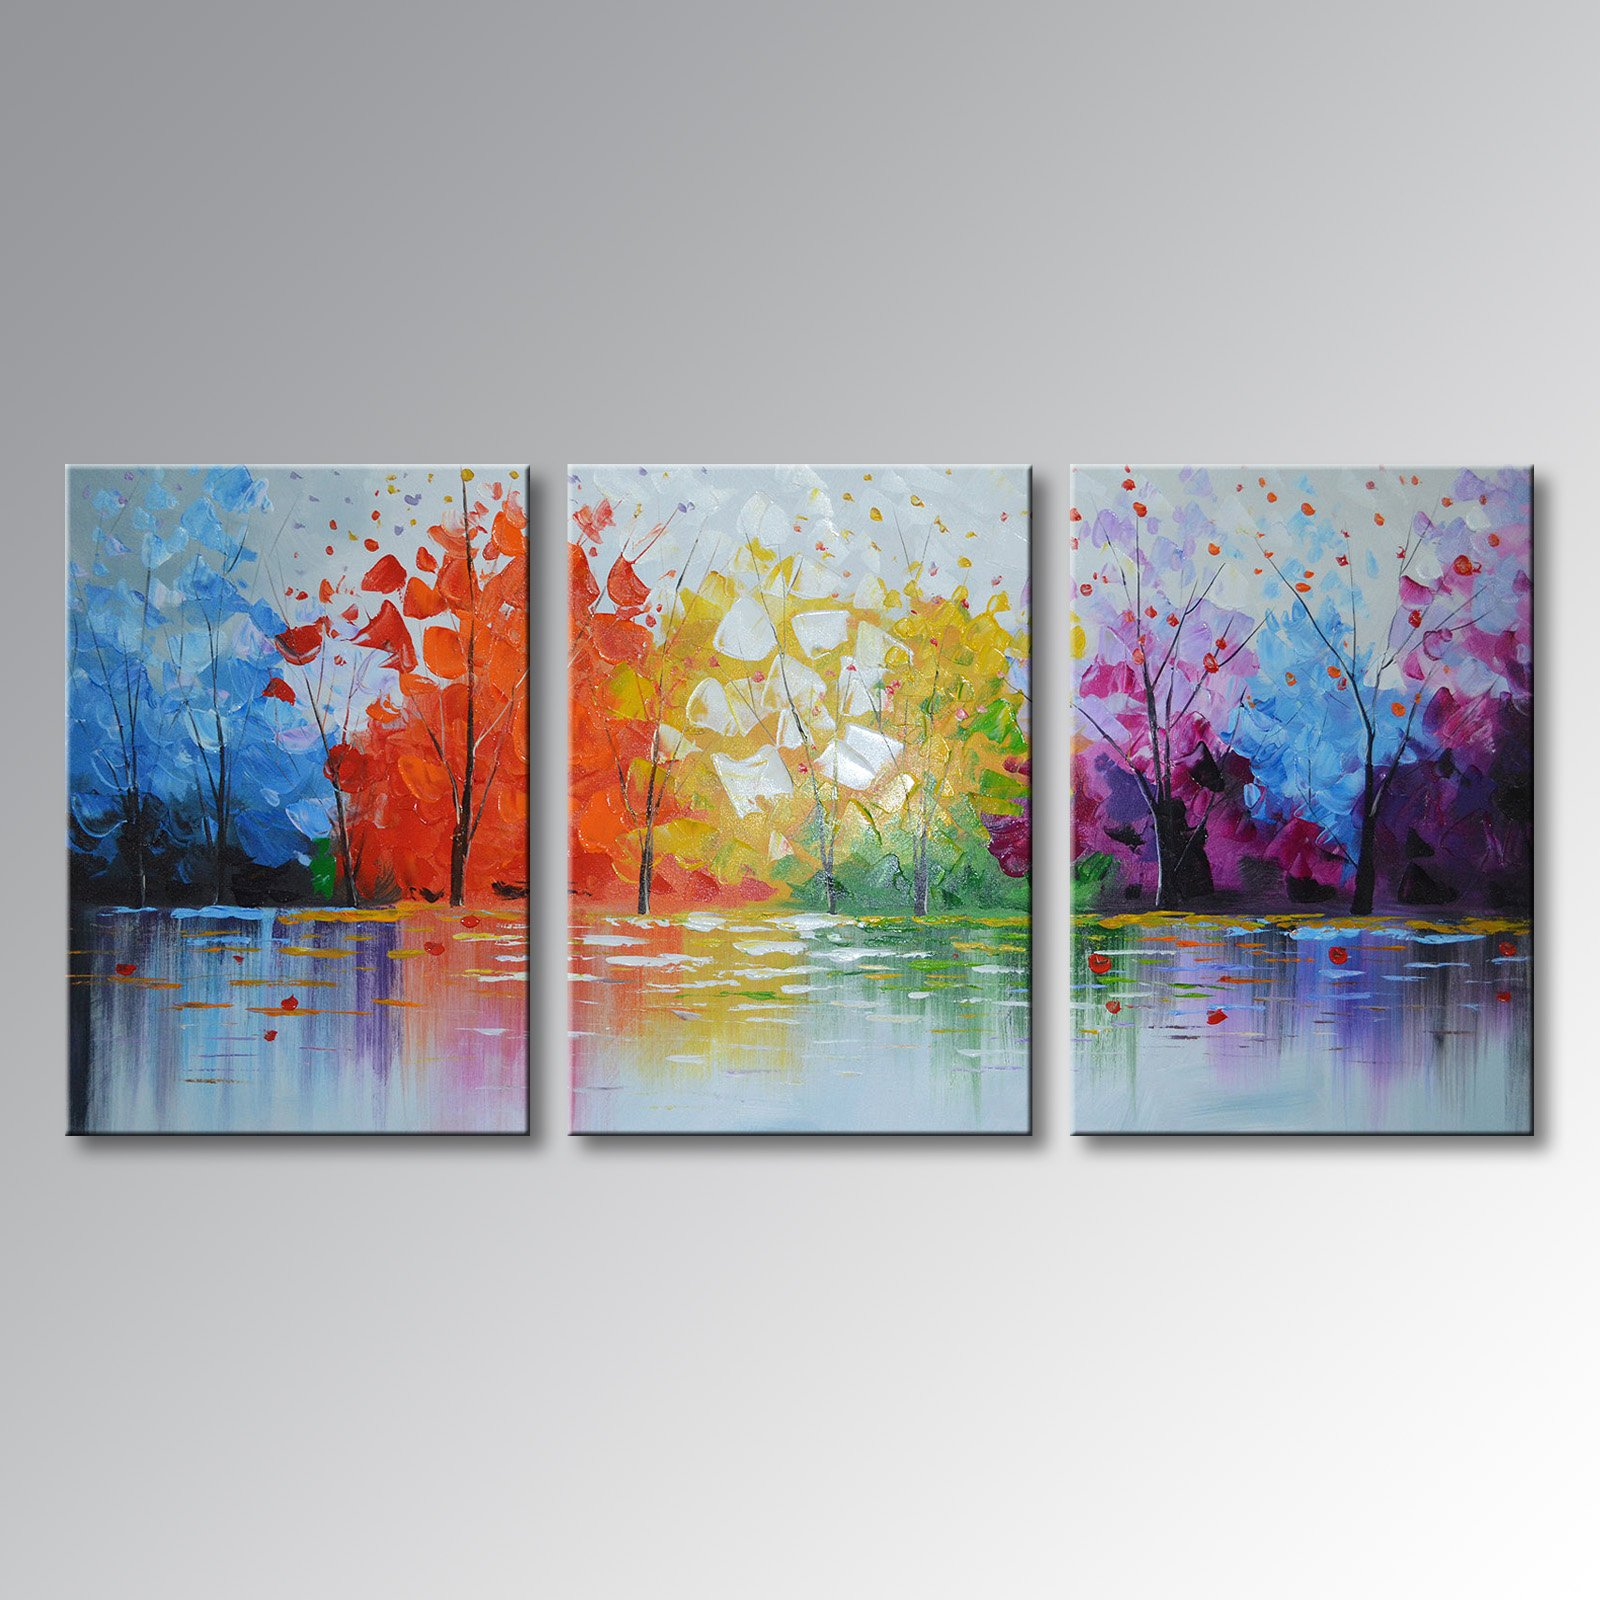 Everfun Art Huge Hand-painted Large Oil Painting 3 Pieces Modern Abstract Wall Art Hanging Lake Scenery Landscape Canvas Picture Framed Ready to Hang 72''W x 36''H